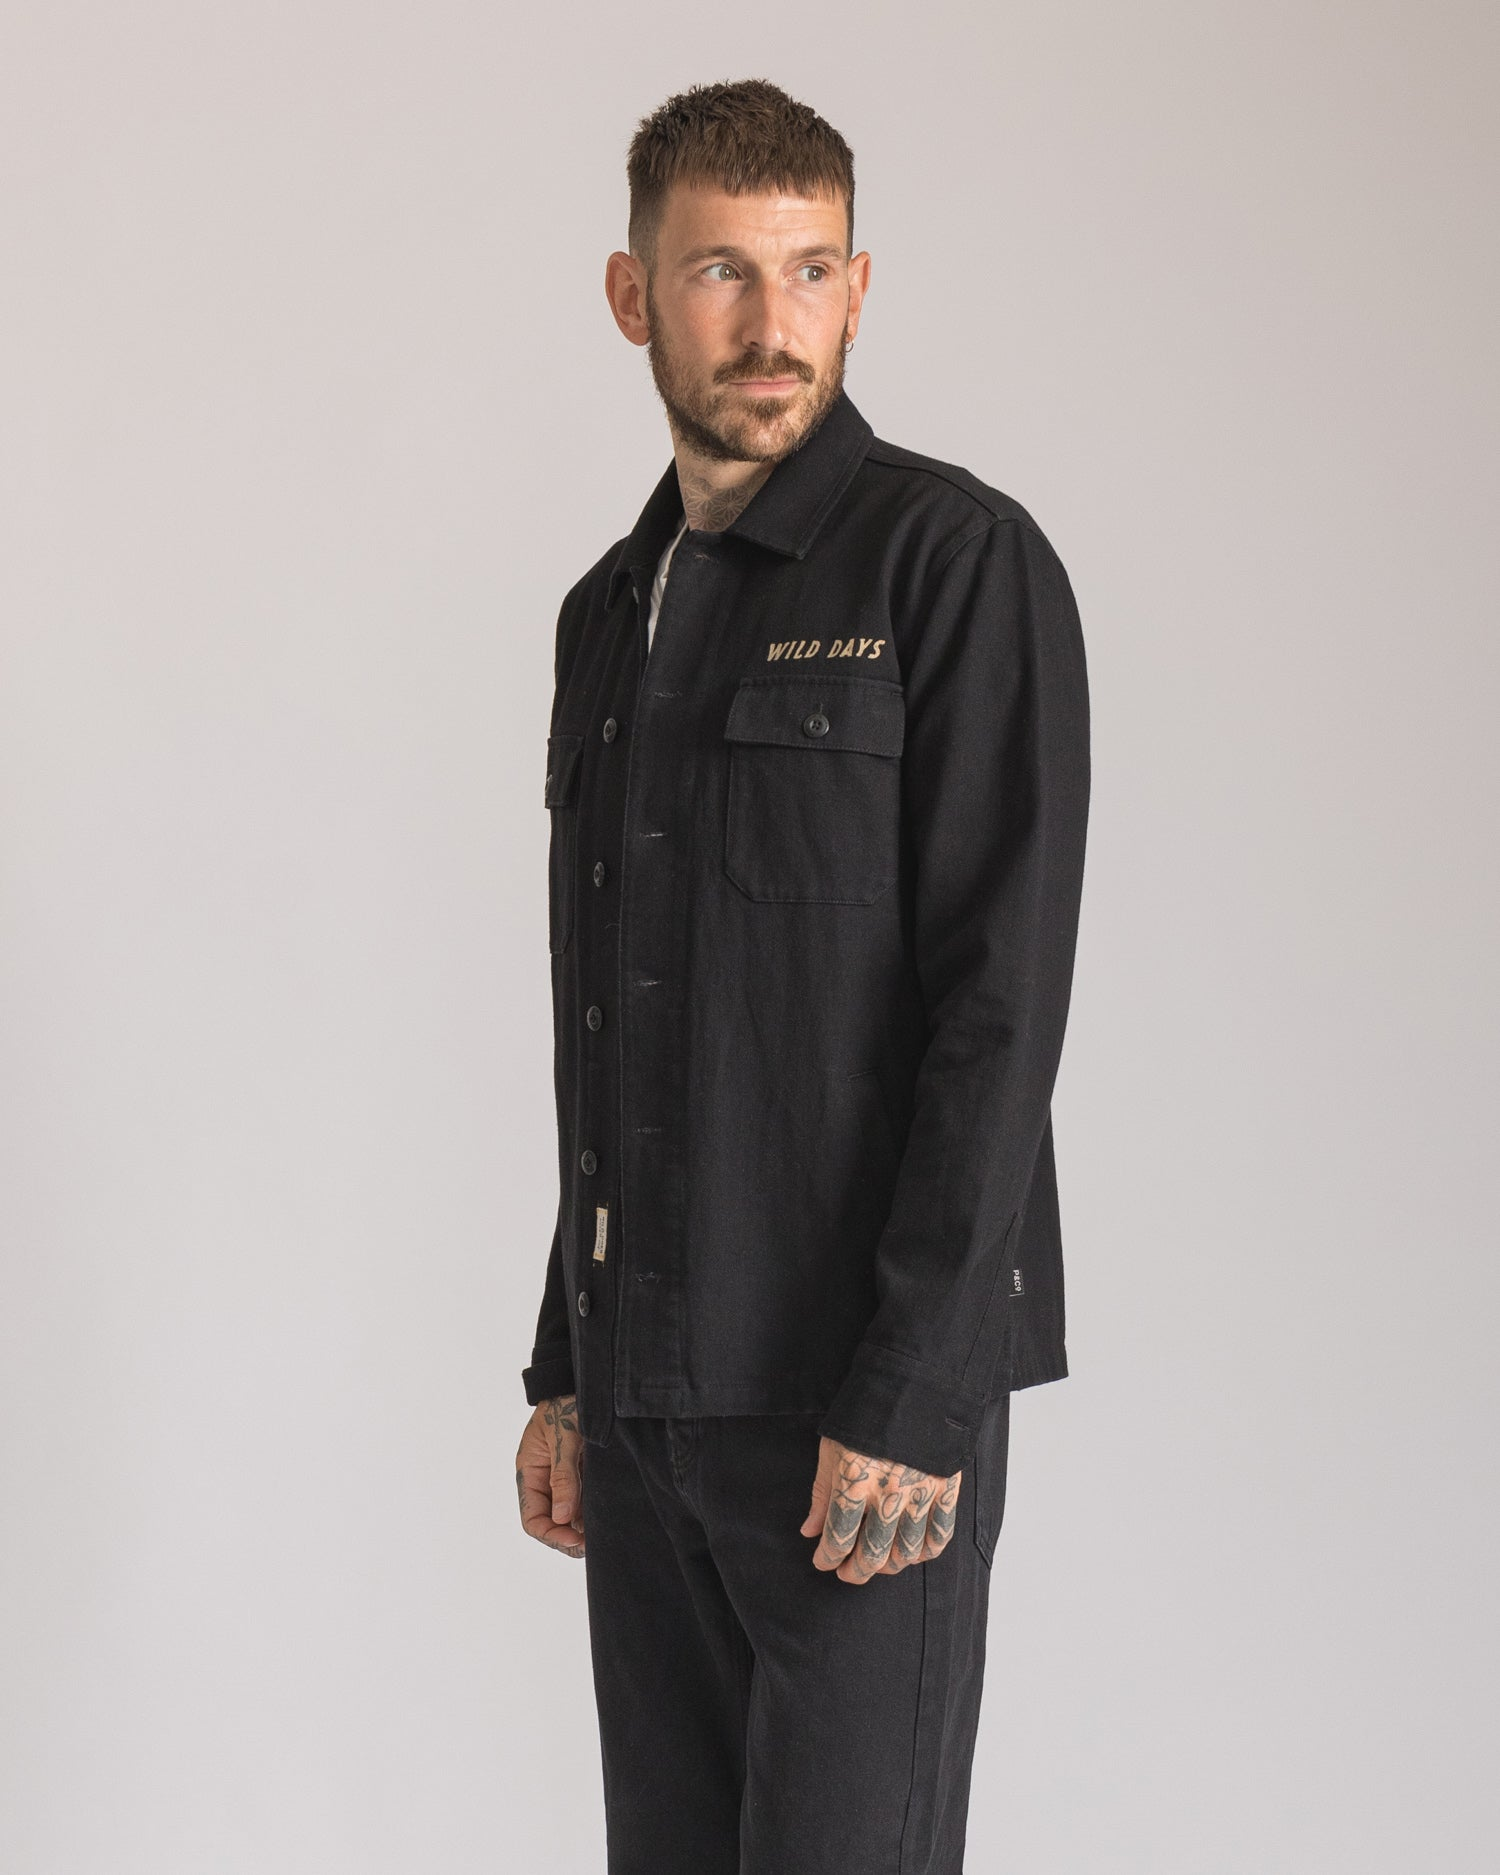 Mens Black Embroidered Overshirt UK